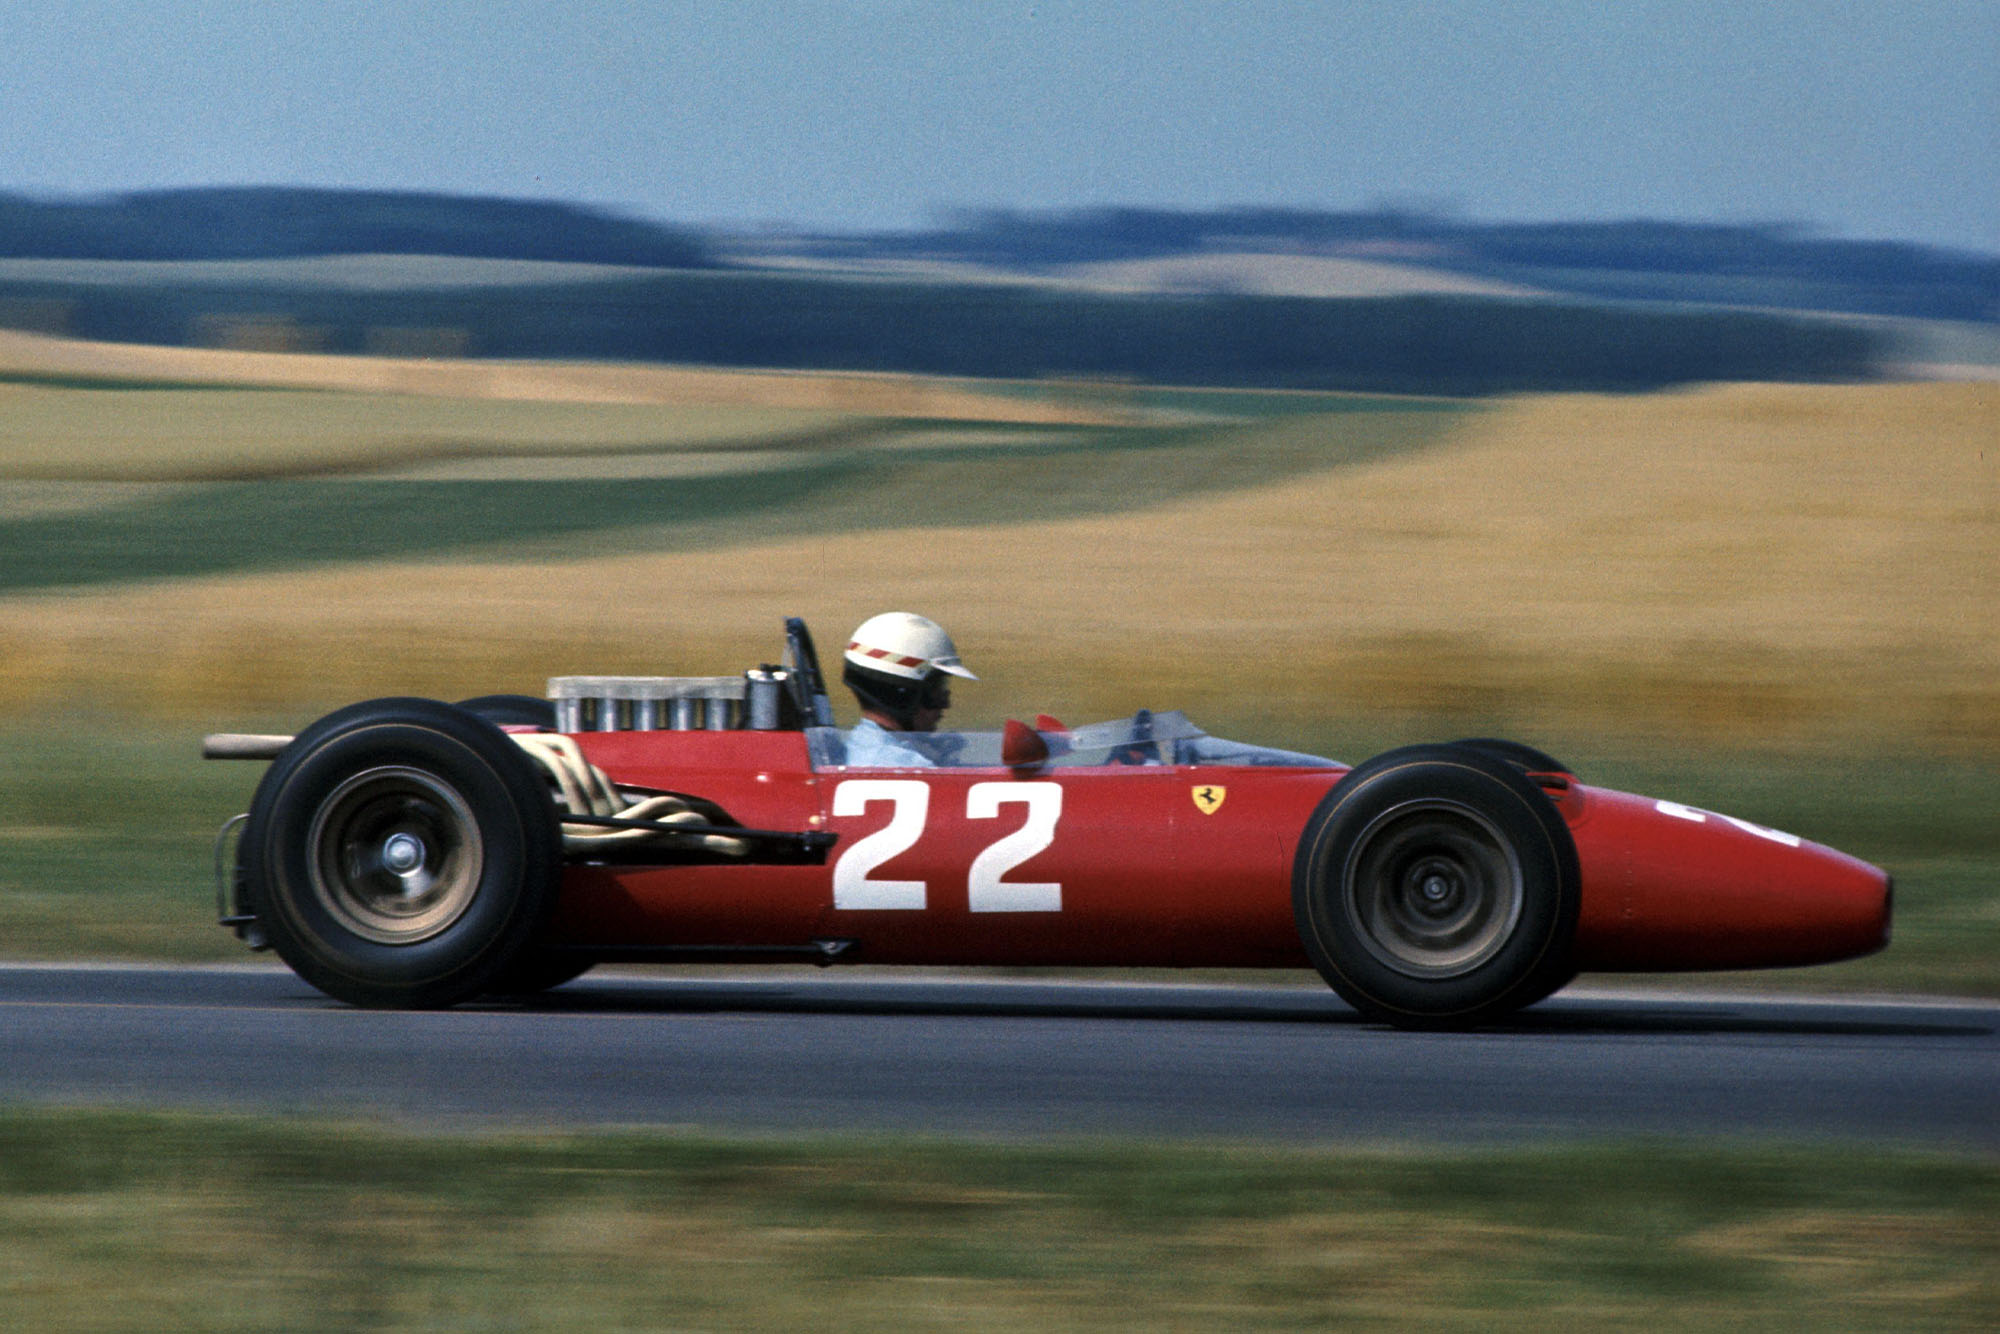 Jack Brabham (AUS) Brabham BT19 scored the first victory for the Repco engine.